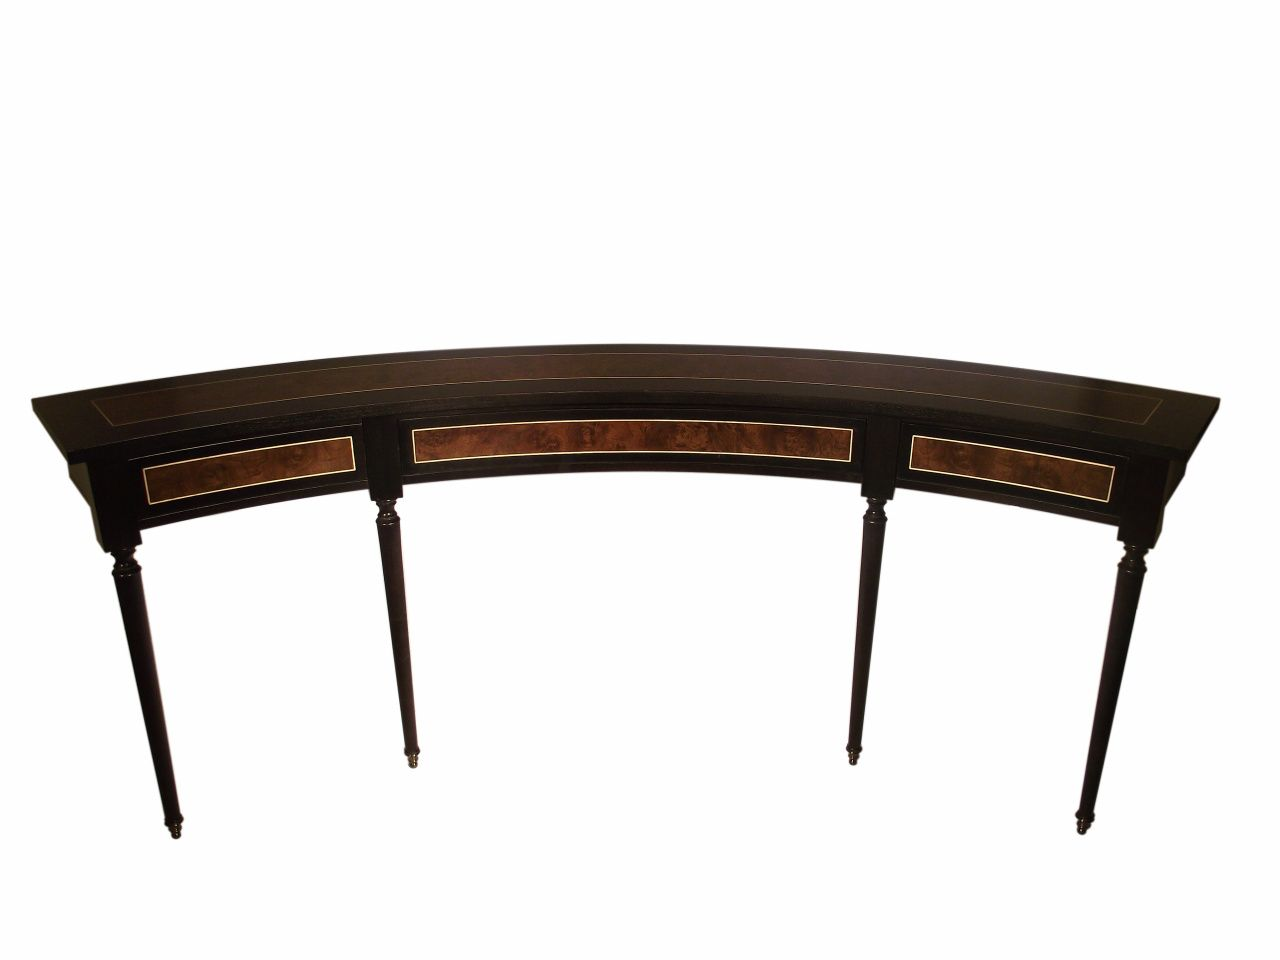 Sofa Tables Pinterest Wide Legs Curved Milo Baughman For Thayer Coggin